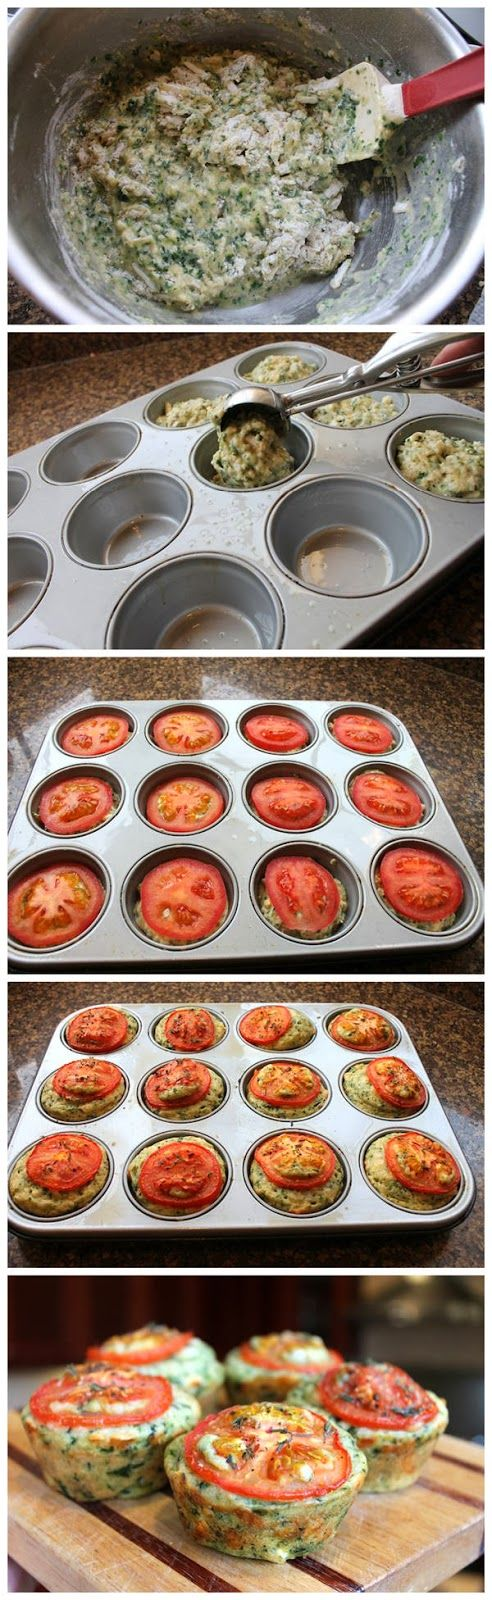 Cheesy Spinach Muffins - RedStarRecipe